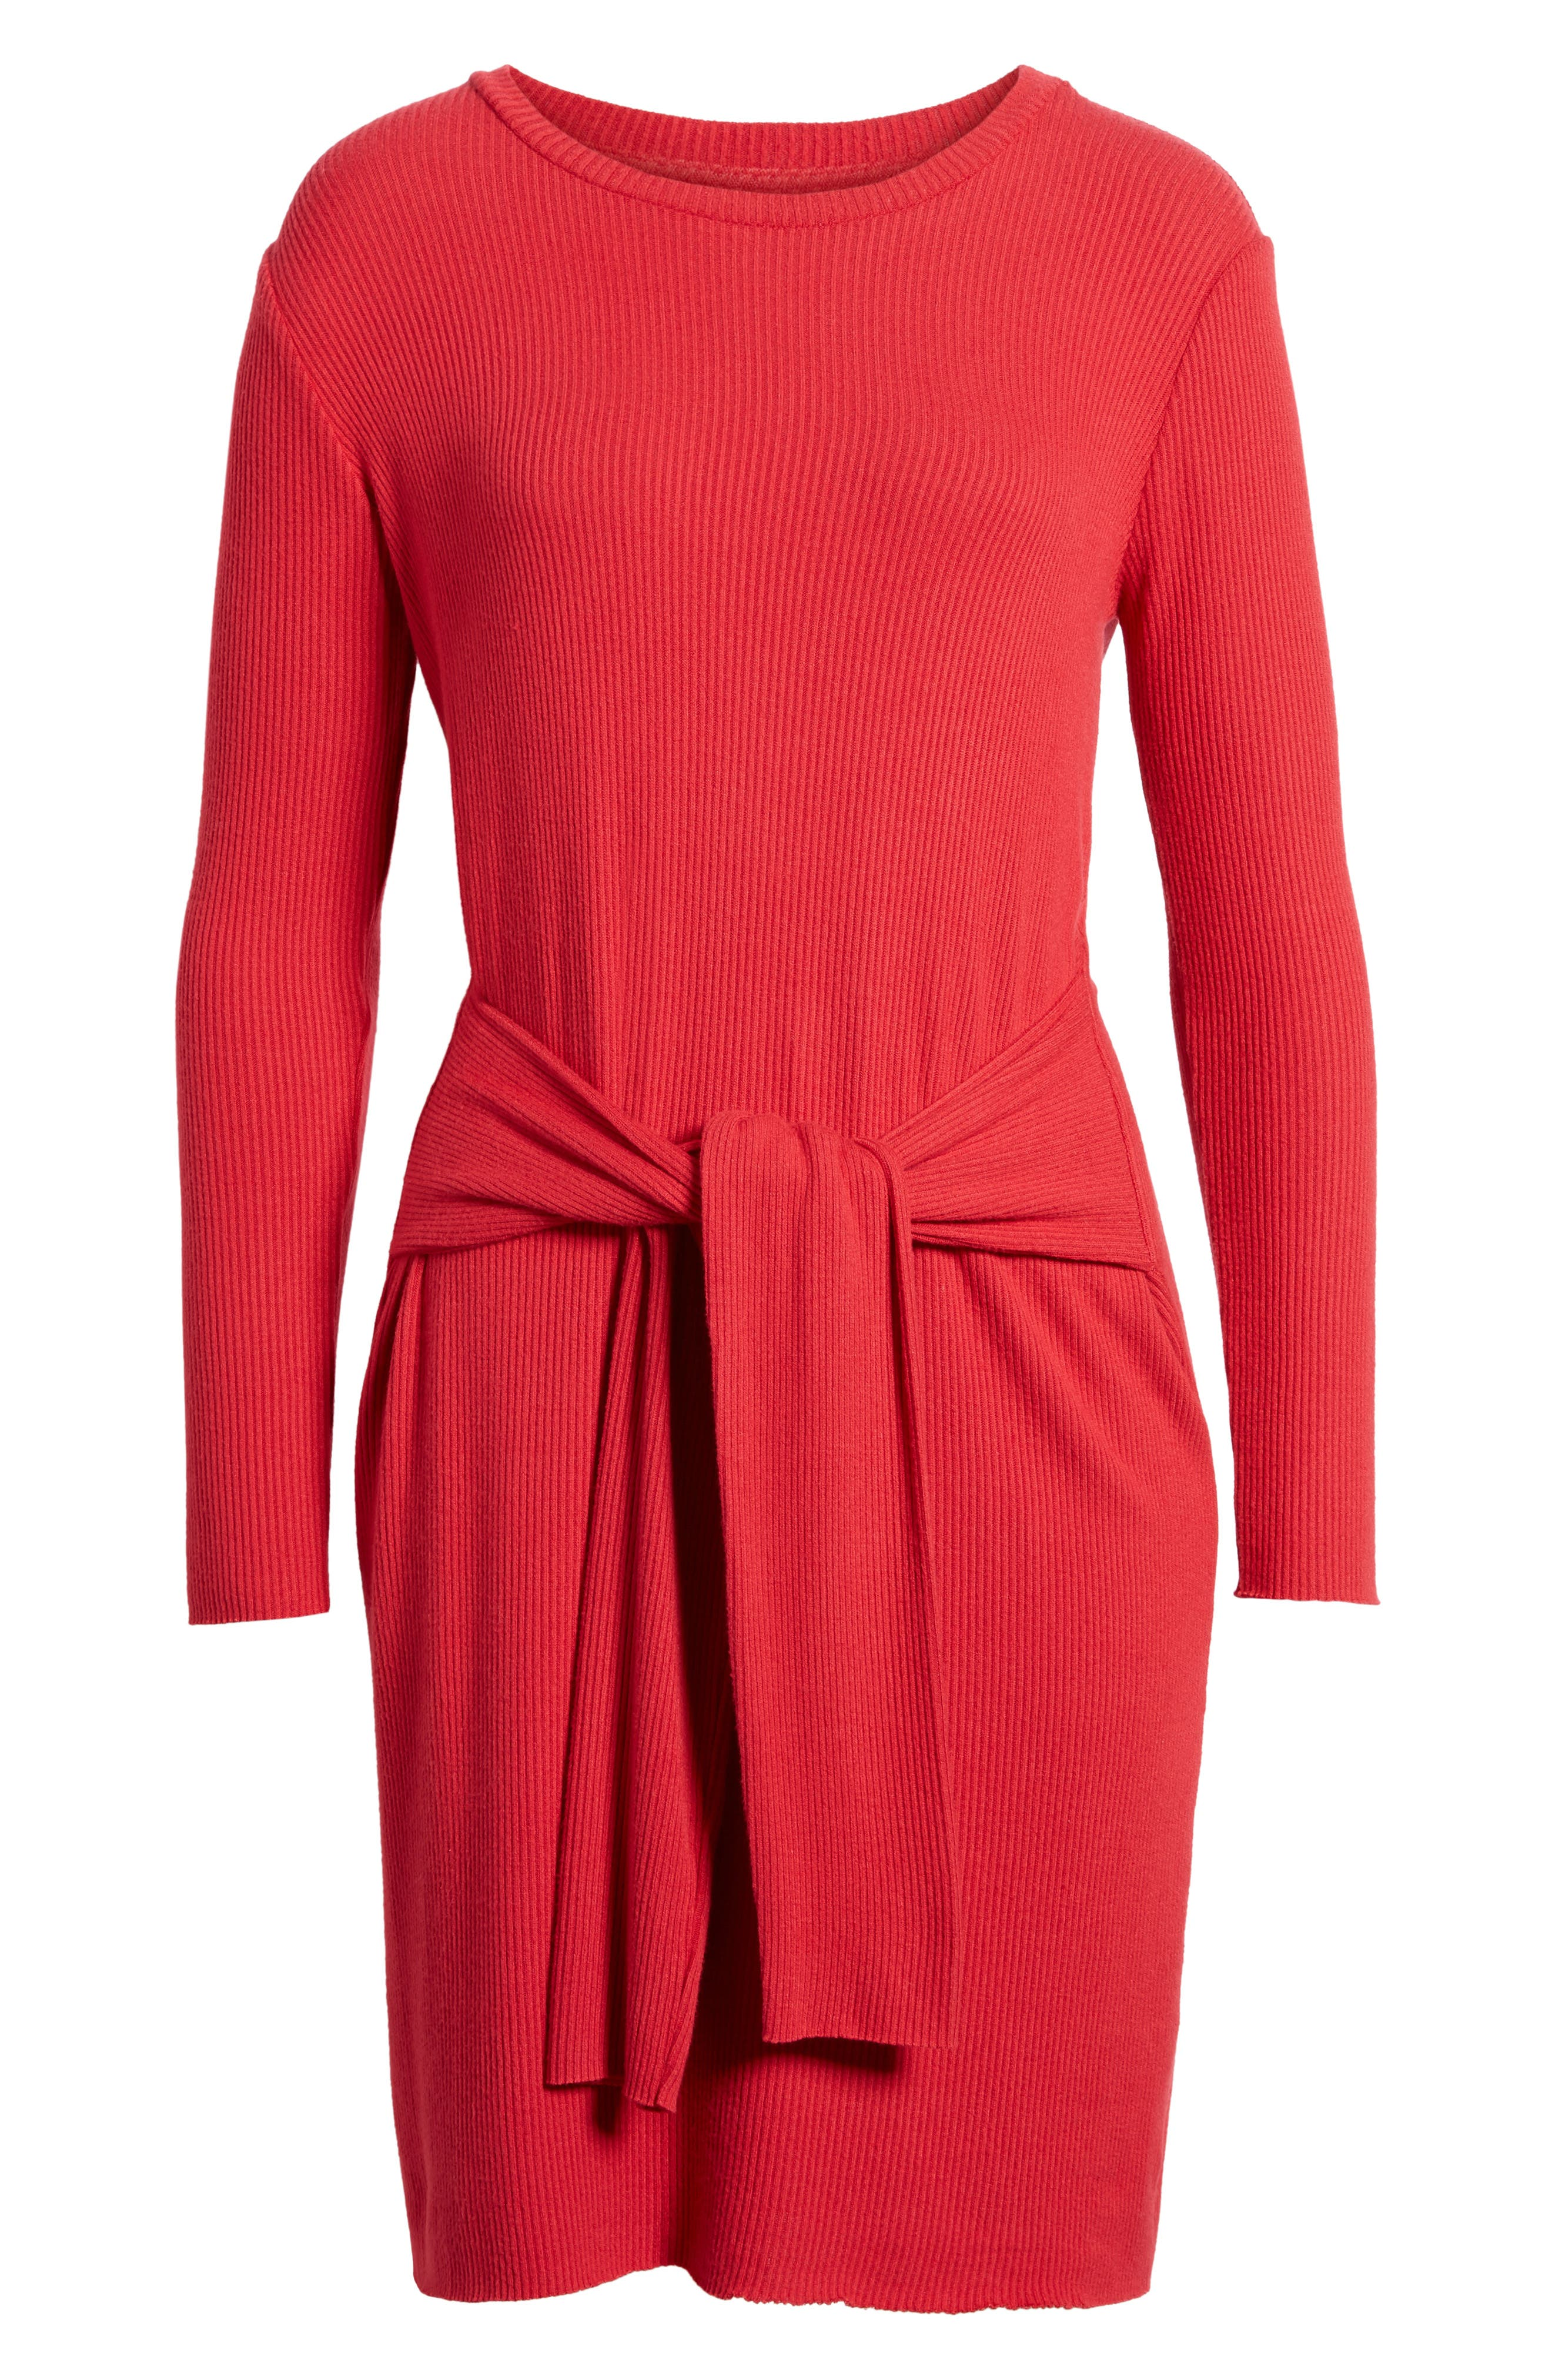 Ribbed Tie-Waist Sweater Dress,                             Alternate thumbnail 6, color,                             600